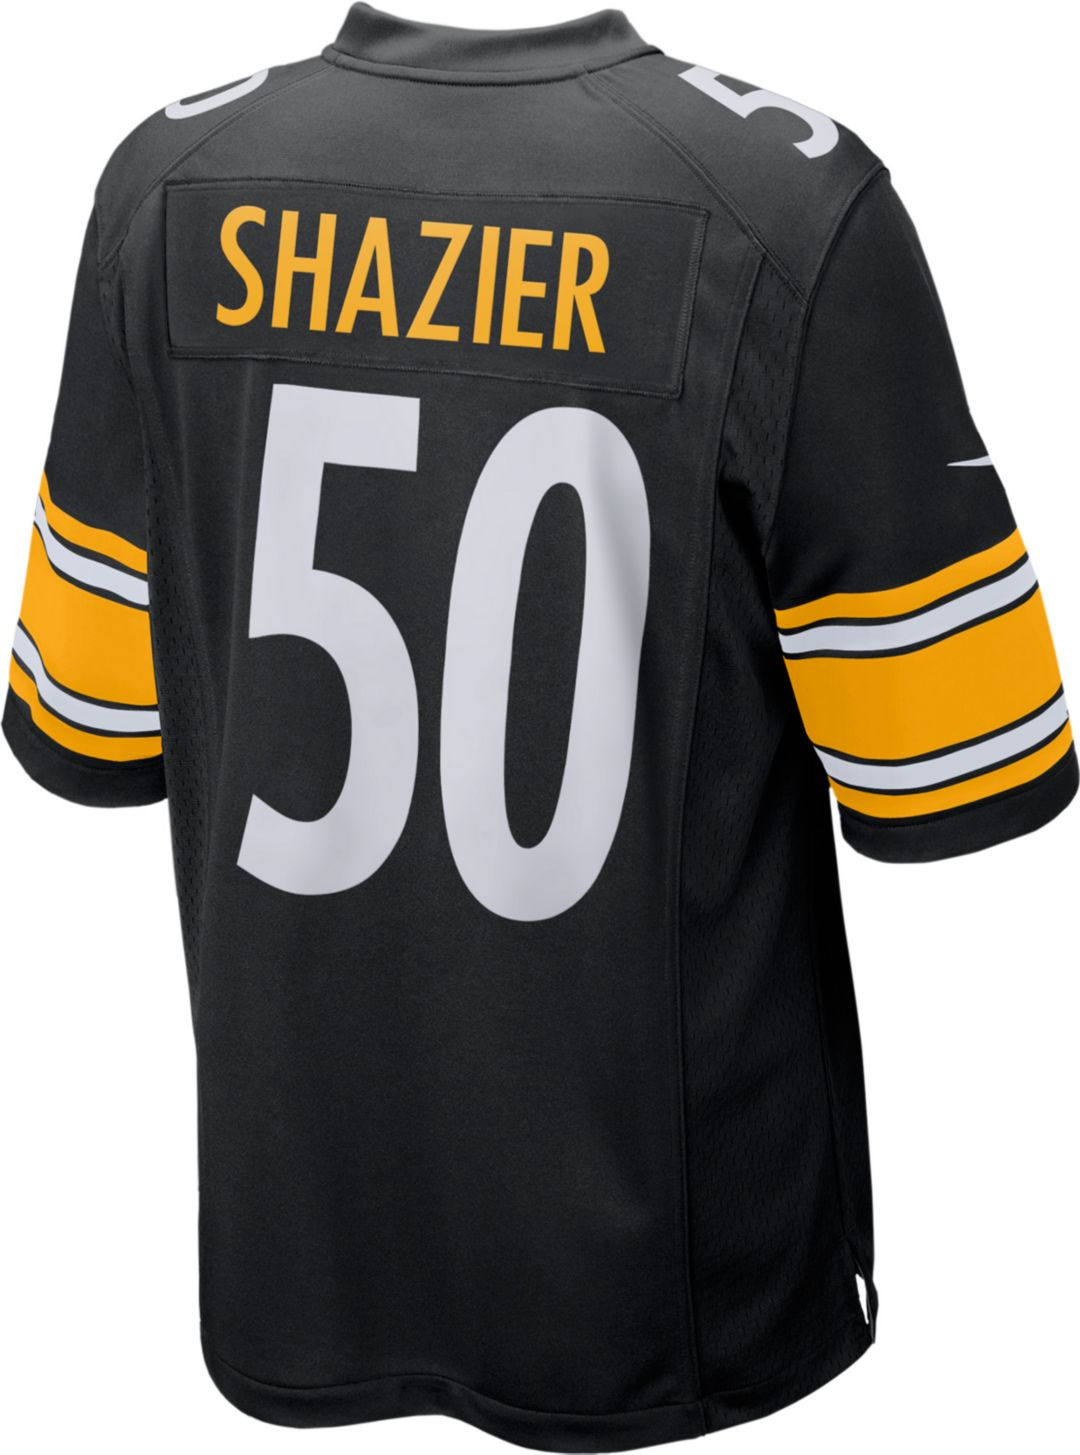 best cheap 9a2fb 041e7 Nike Youth Home Game Jersey Pittsburgh Steelers Ryan Shazier #50